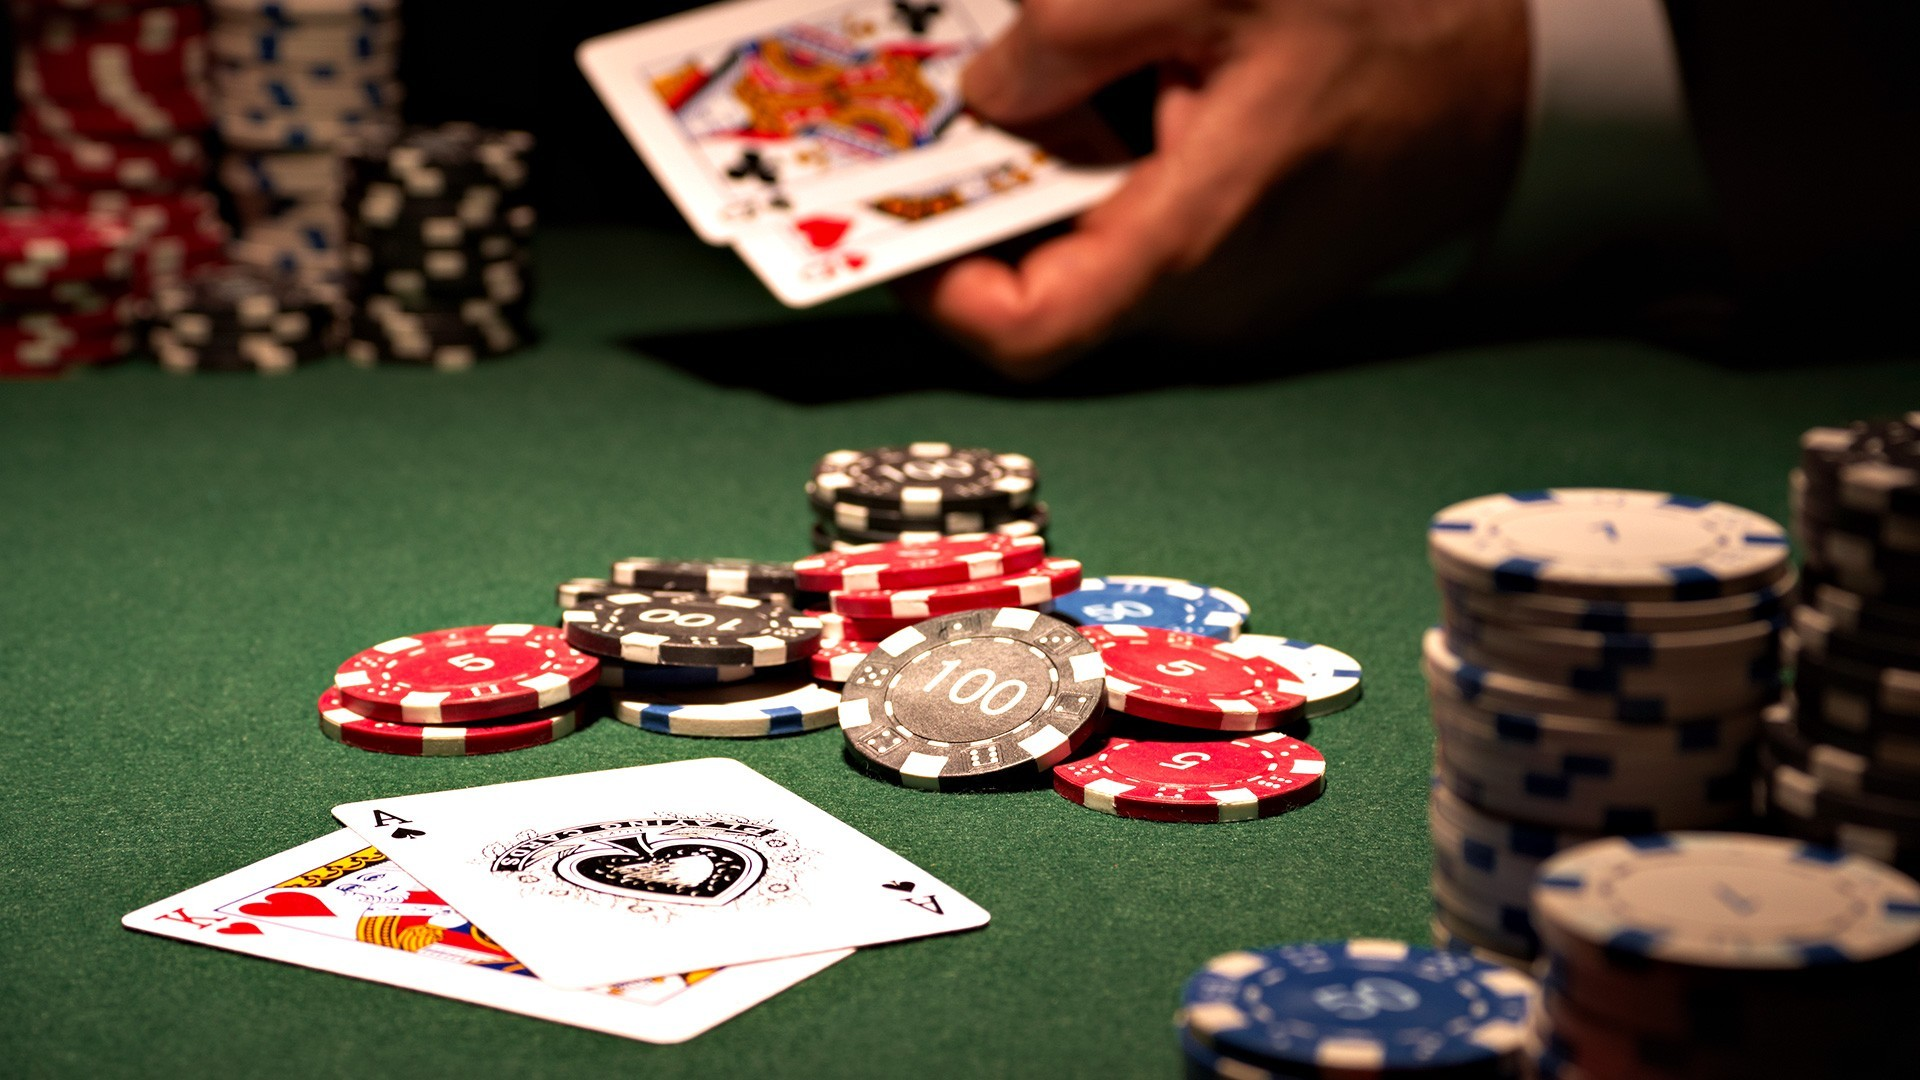 How To Improve At Online Casino In 60 Minutes